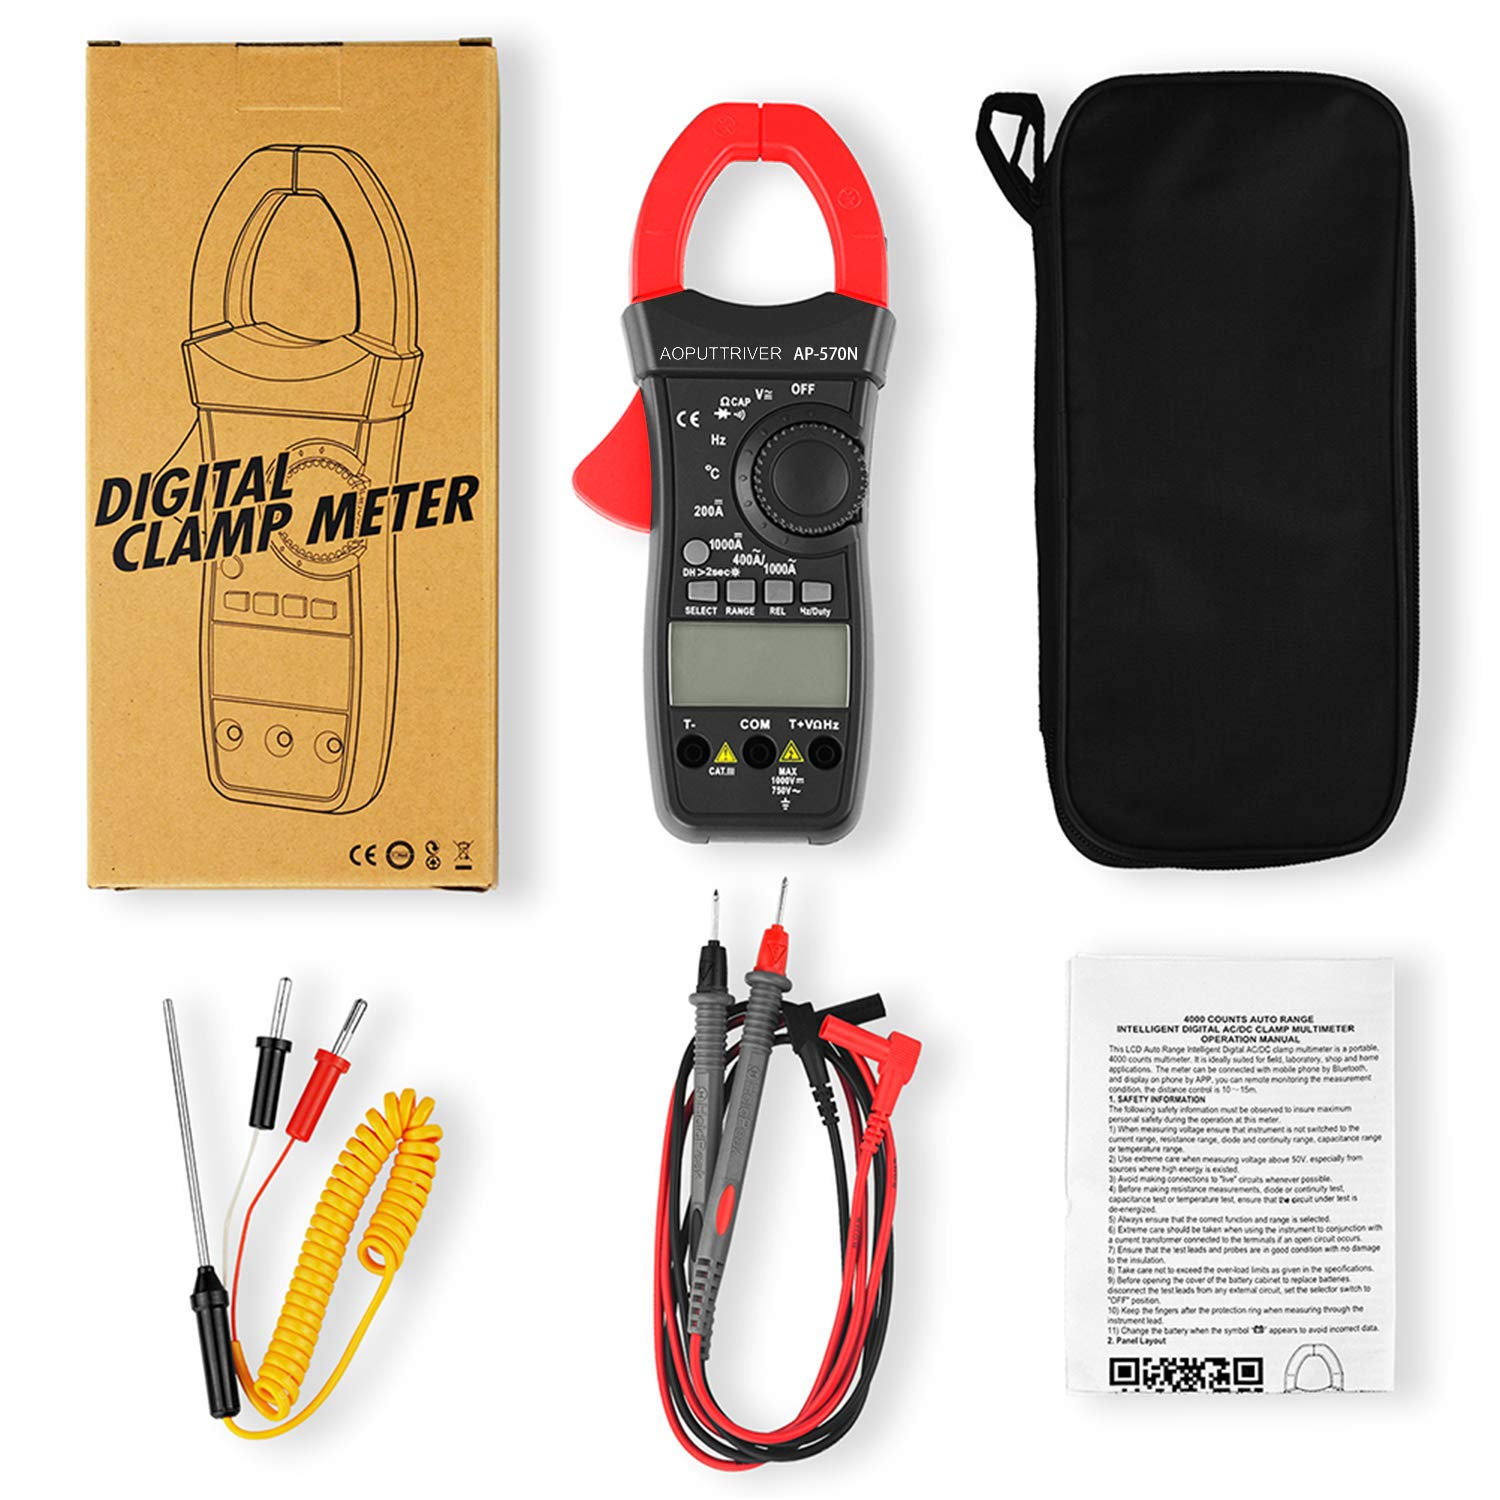 Holdpeak Digital Clamp Meter Multimeter HP-6205 Amp Meter Auto Ranging 6000 Counts TRMS Clamp Meter for AC/&DC Current Amperage Voltage Resistance Capacitance Temp Tester with Backlight